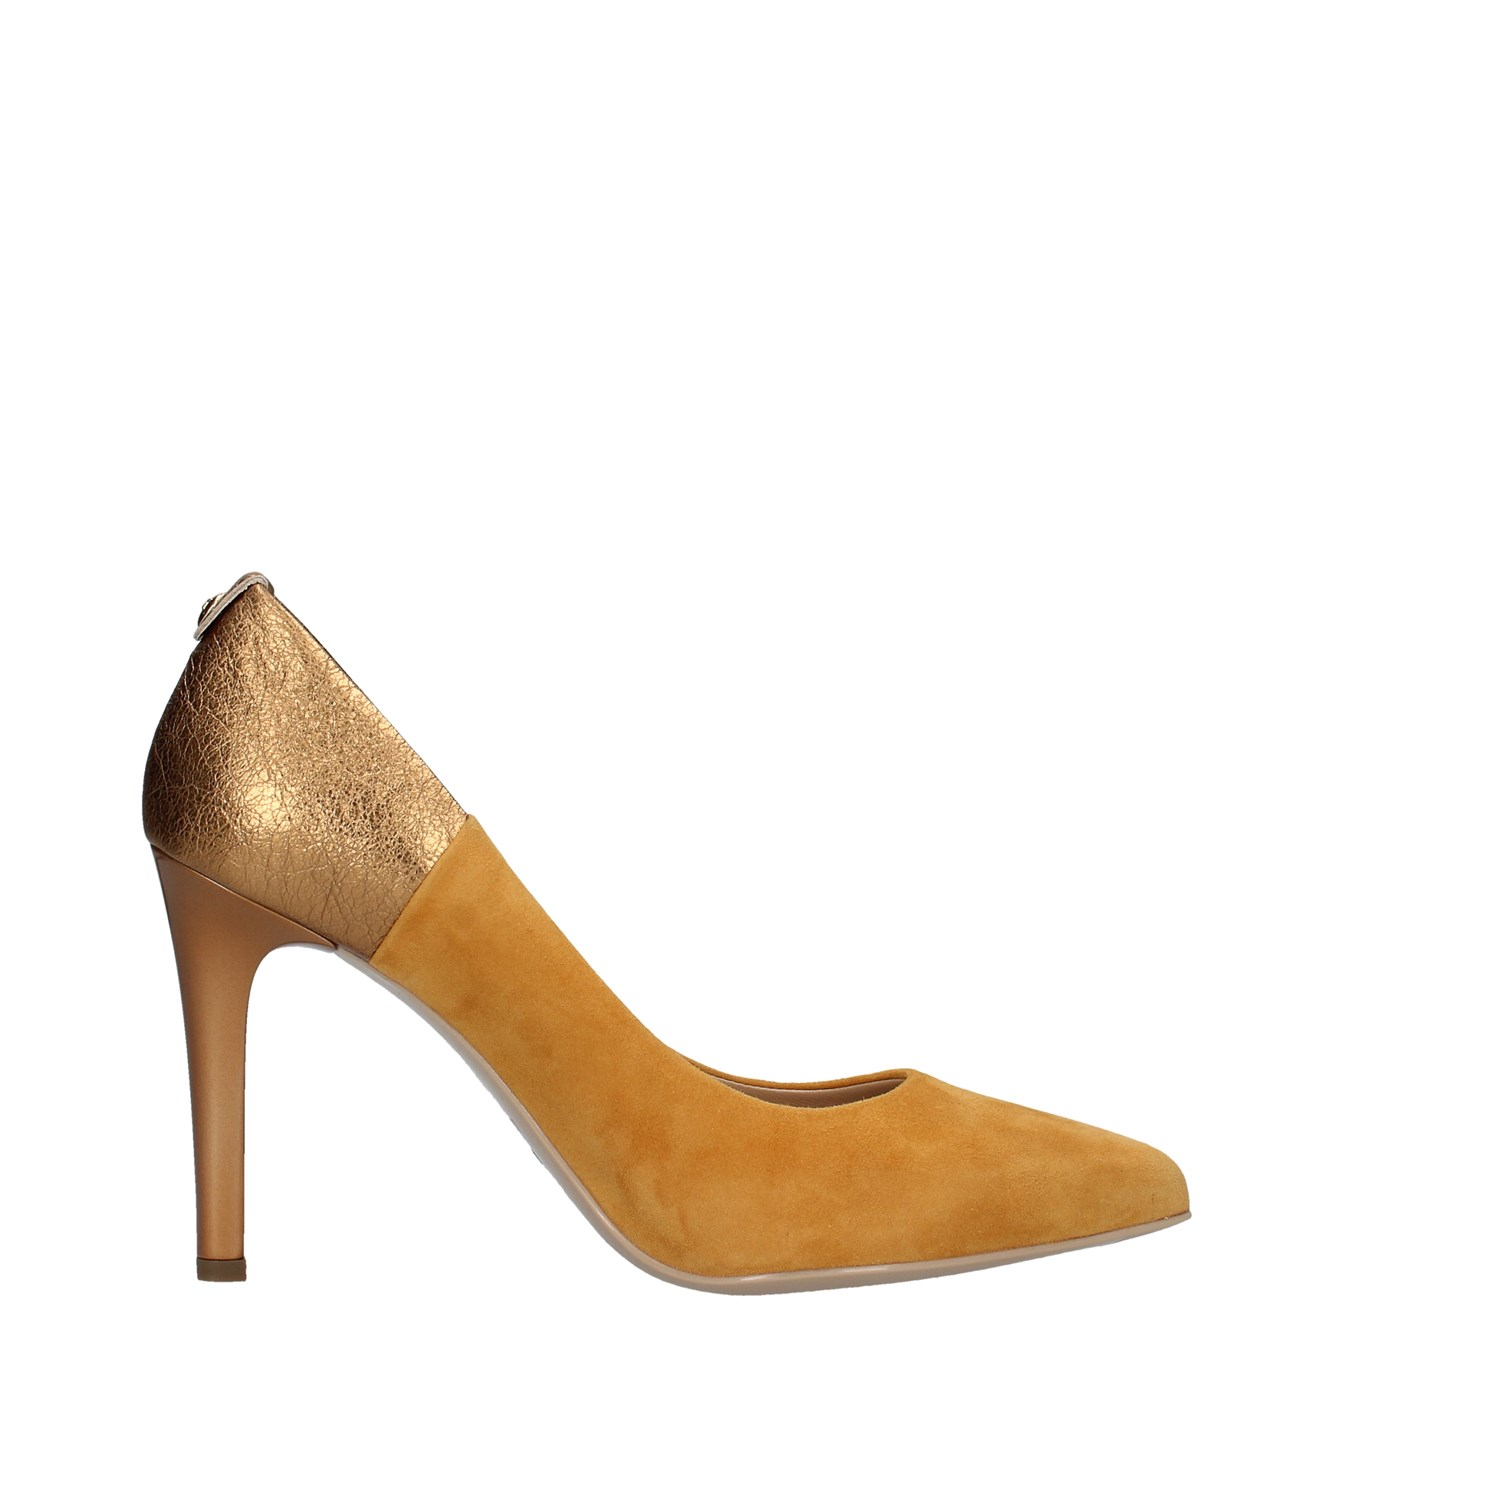 Nero Giardini Shoes Woman Decolletè YELLOW A909330DE